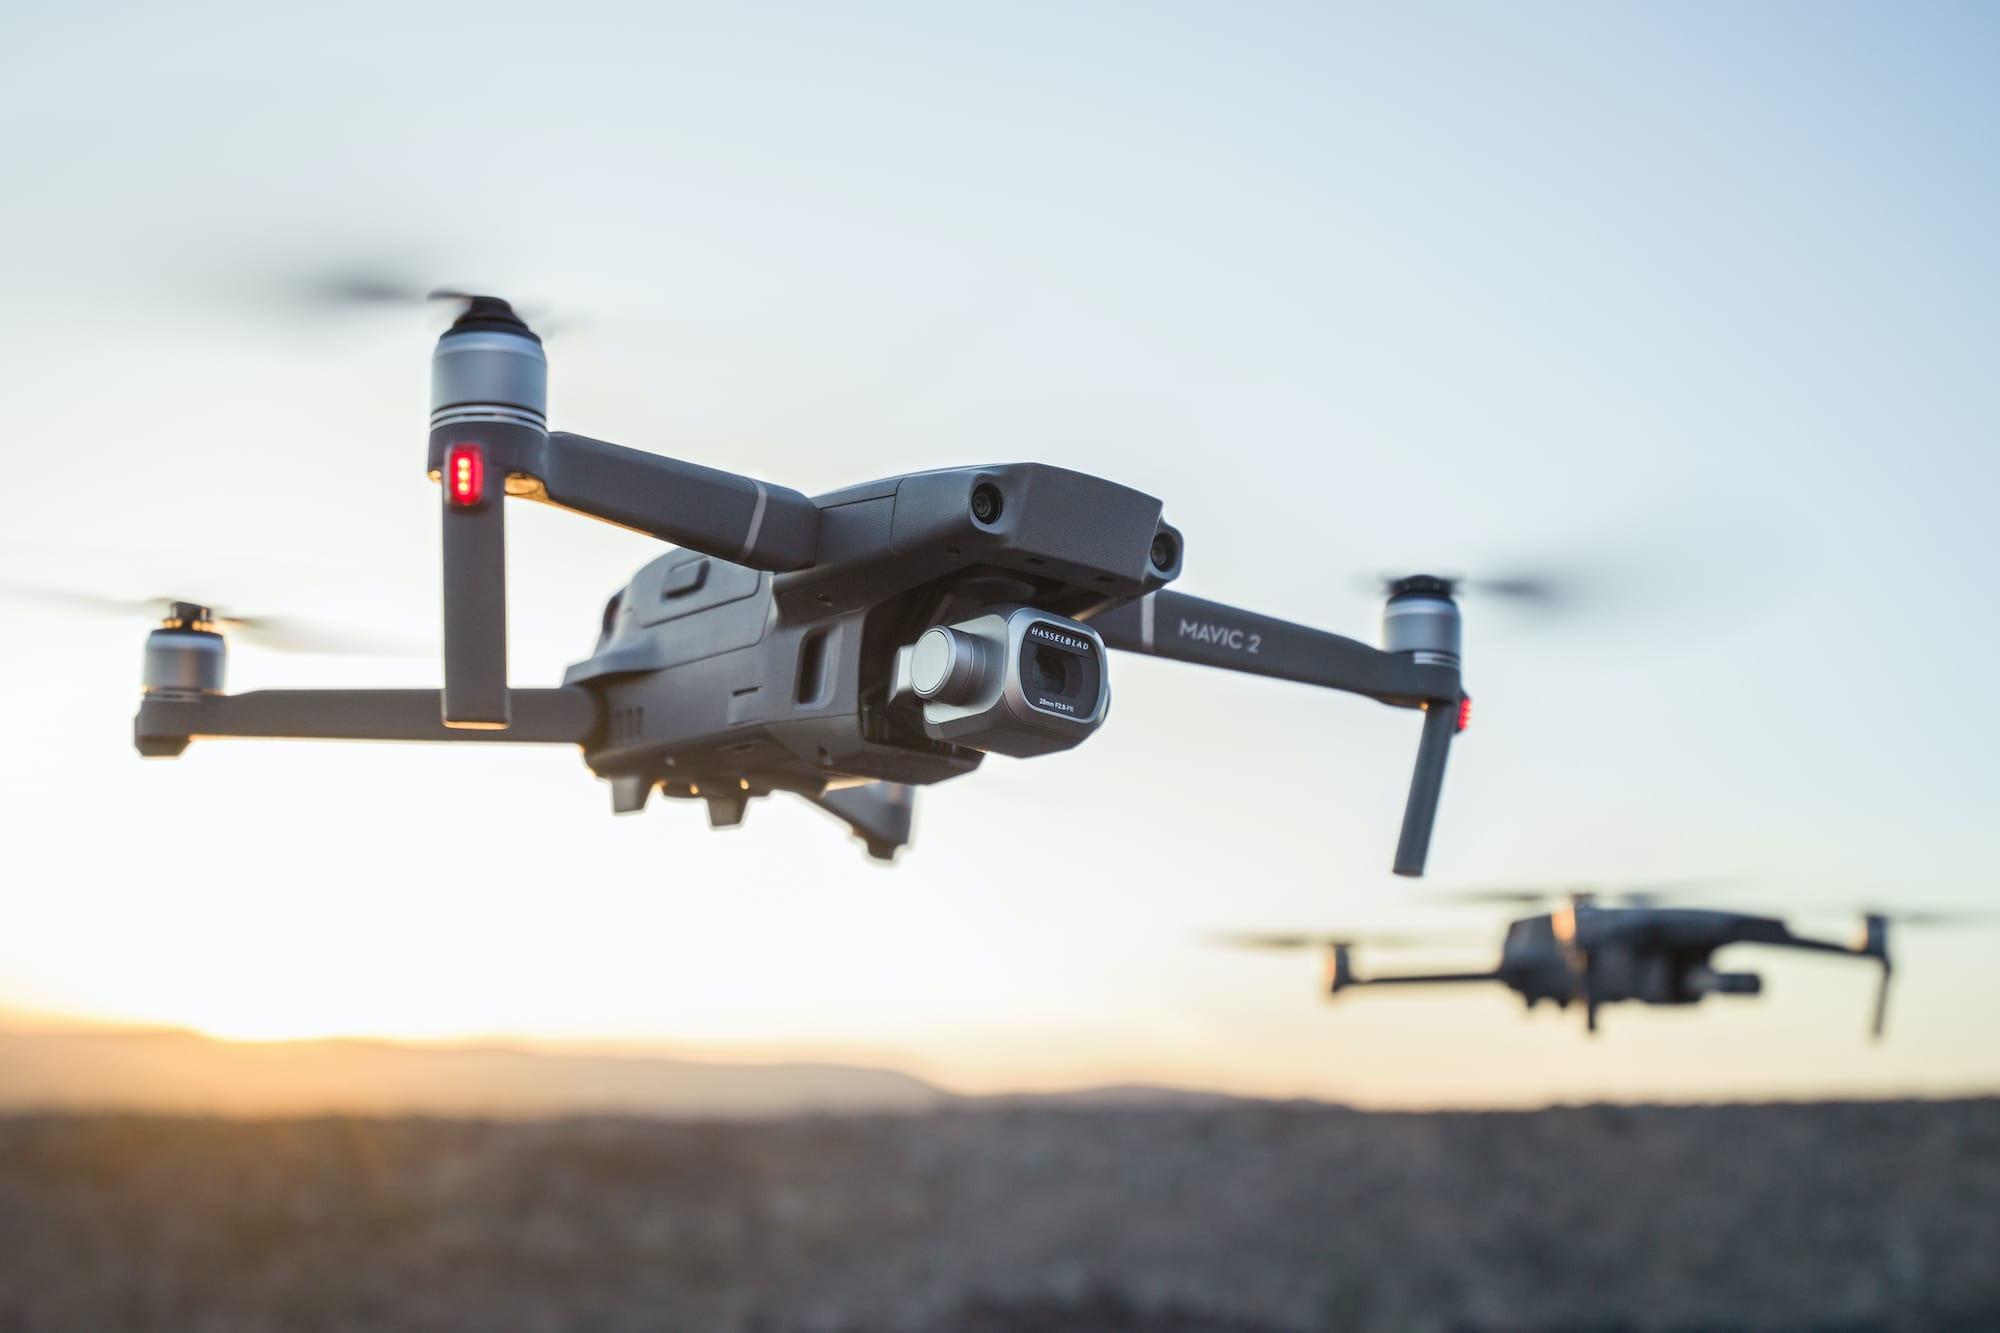 New Jersey town aims to regulate airspace and restrict drones - DJI Mavic 2 firmware update increases range to 6 miles for both Pro and Zoom models